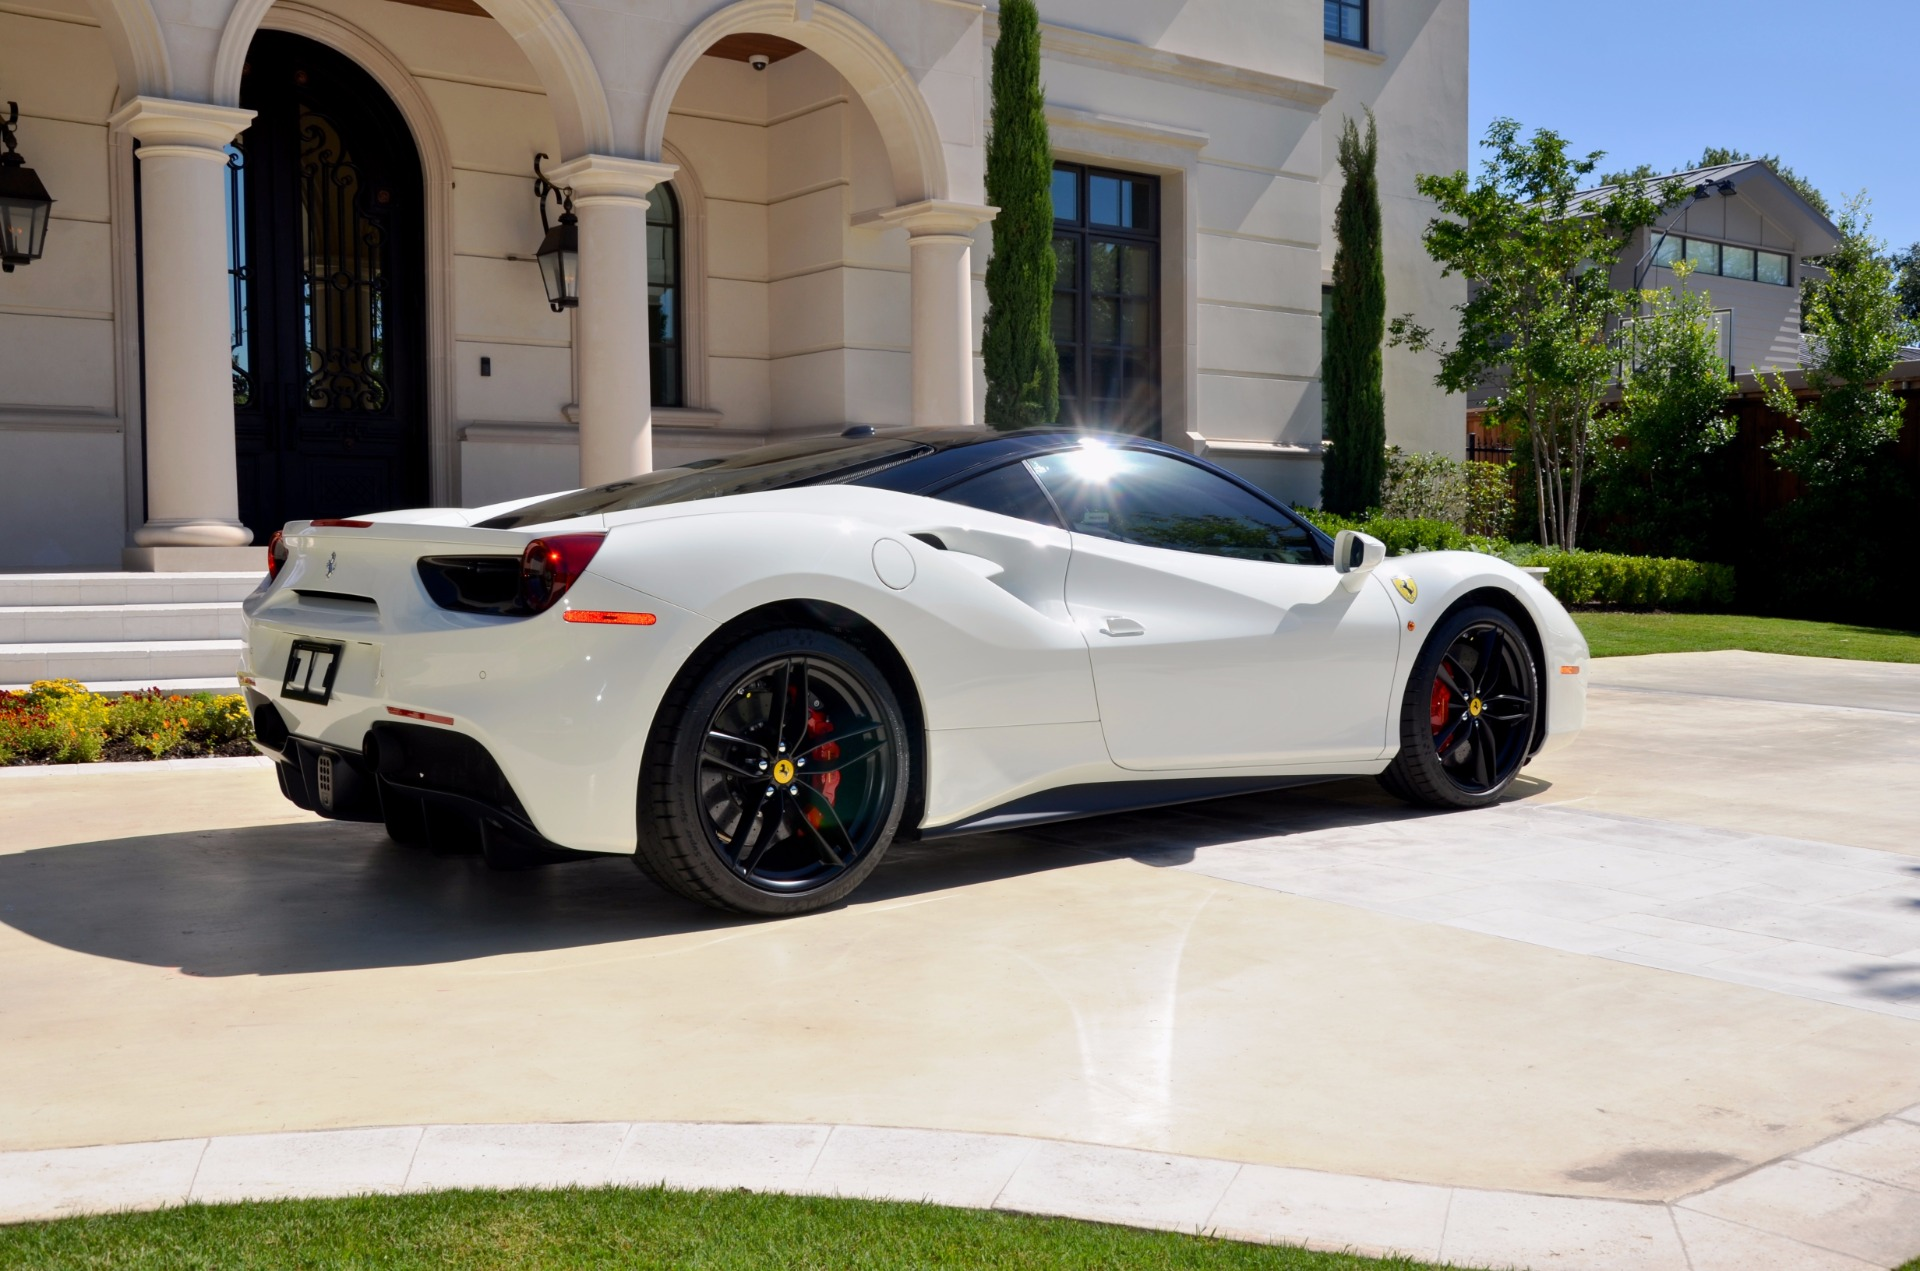 motorcars dallas c platinum in used a ferrari sale tx l rent htm spider for